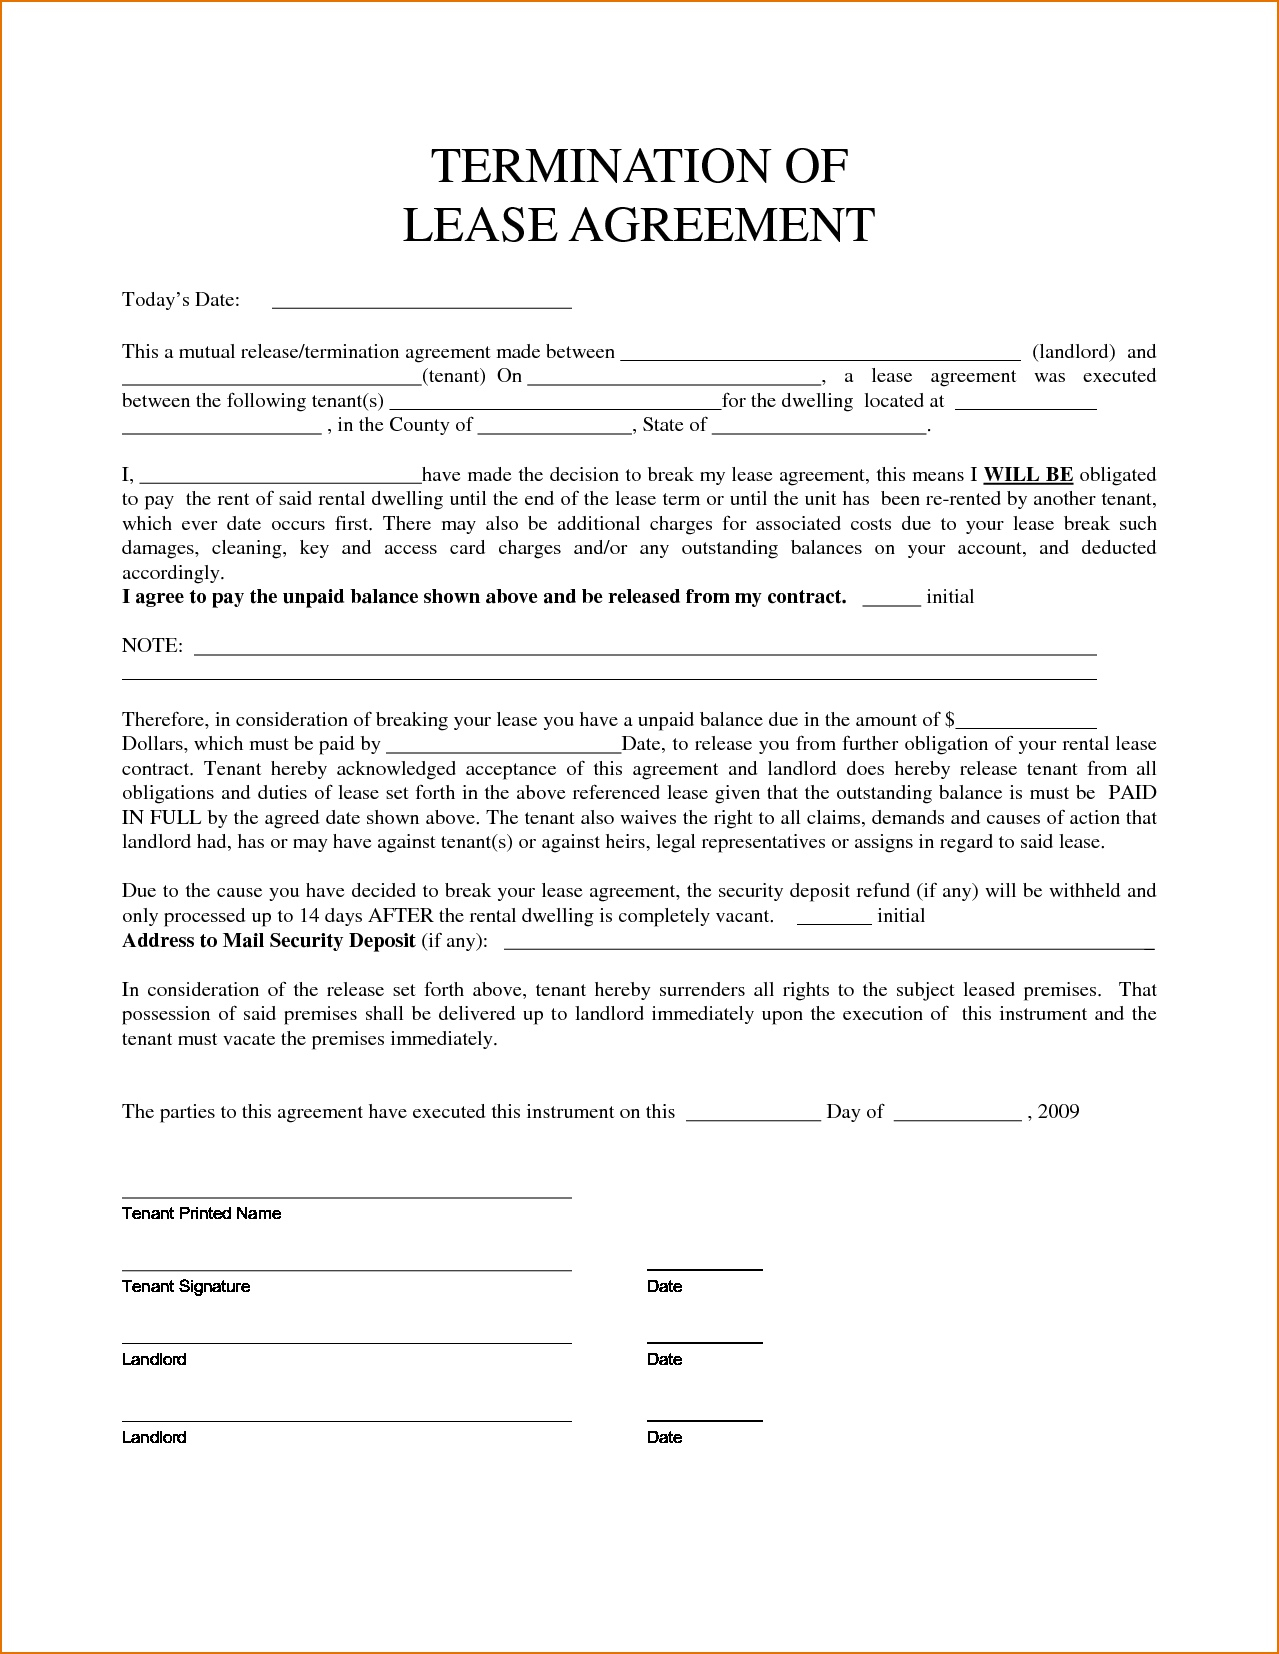 Termination And Mutual Release Agreement Landlord Breach Of Lease Agreement Basic Free Delaware Notice Rental